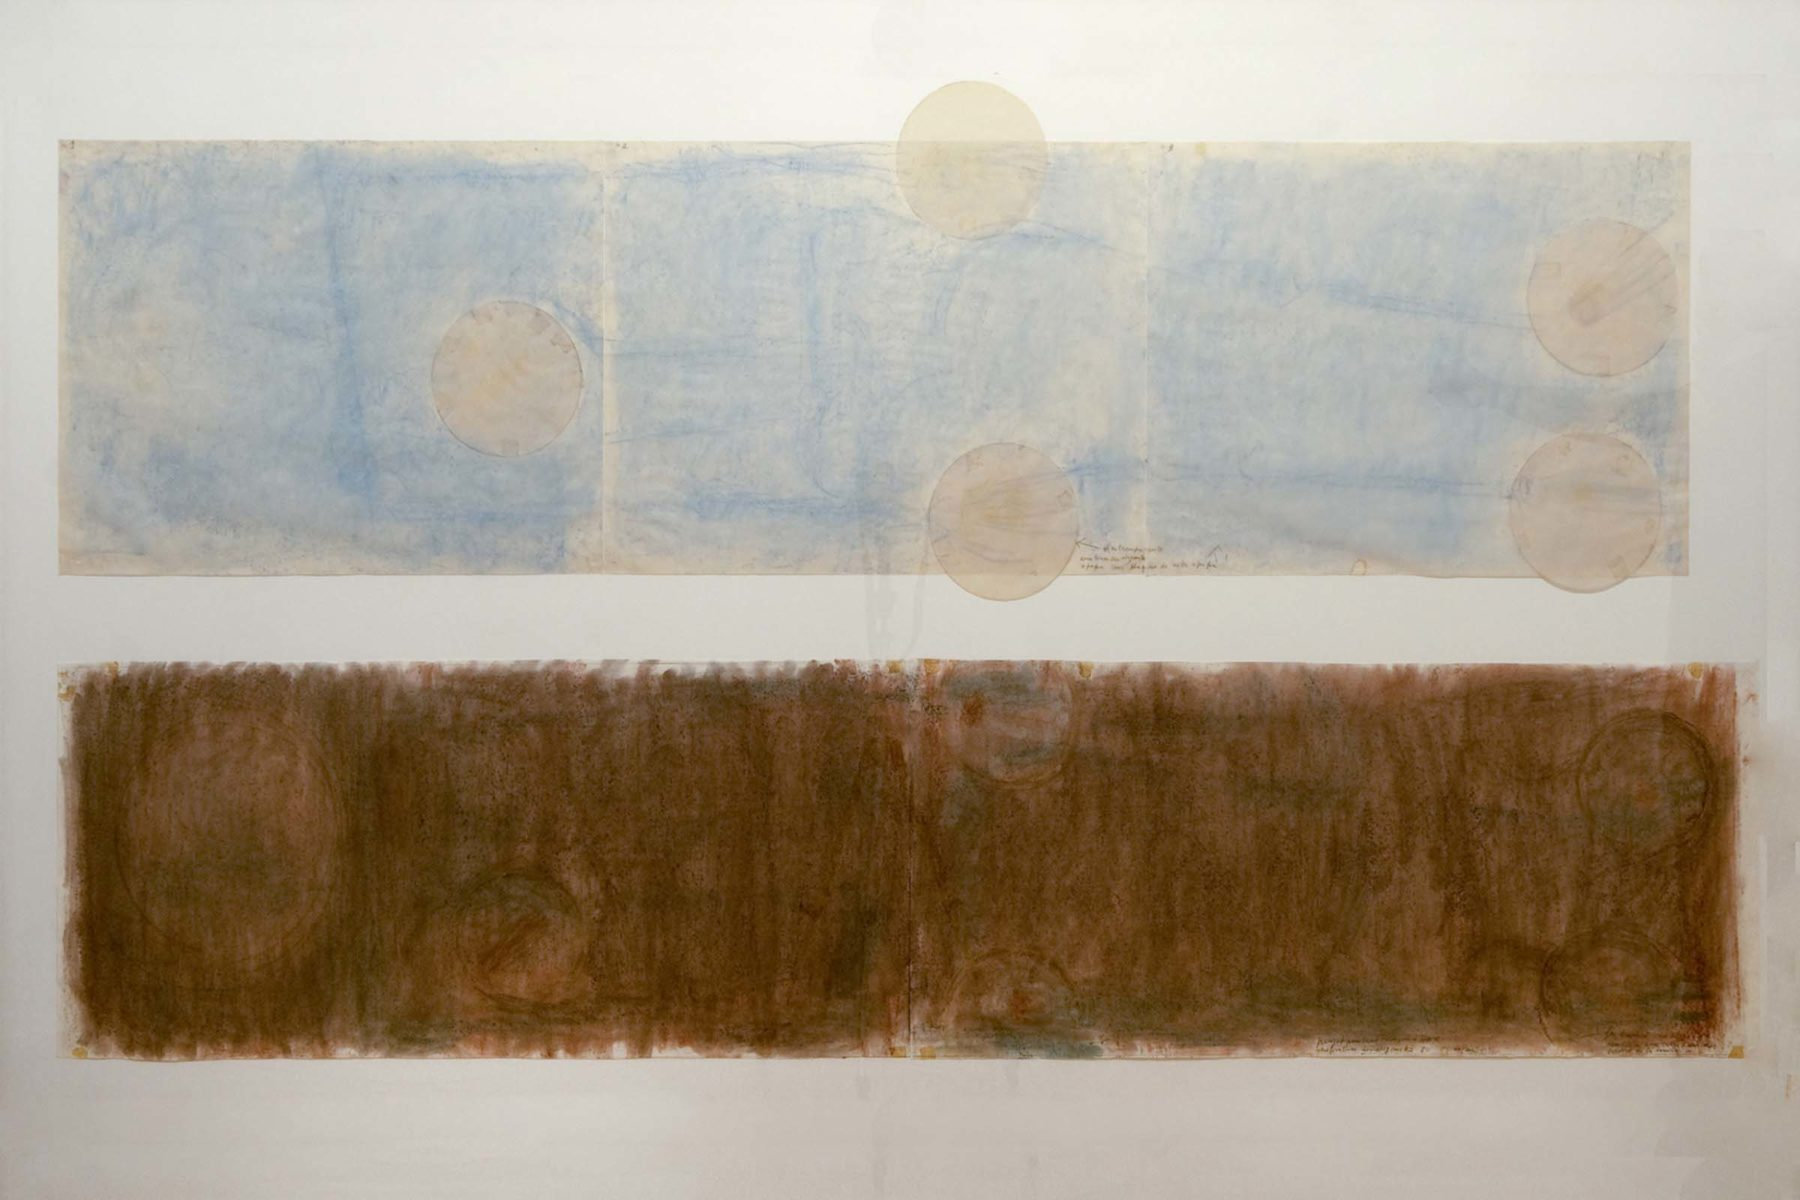 Gina Pane, Project for San Francesco d'Assisi, 1985, pastel and collage on paper, 122×211 cm